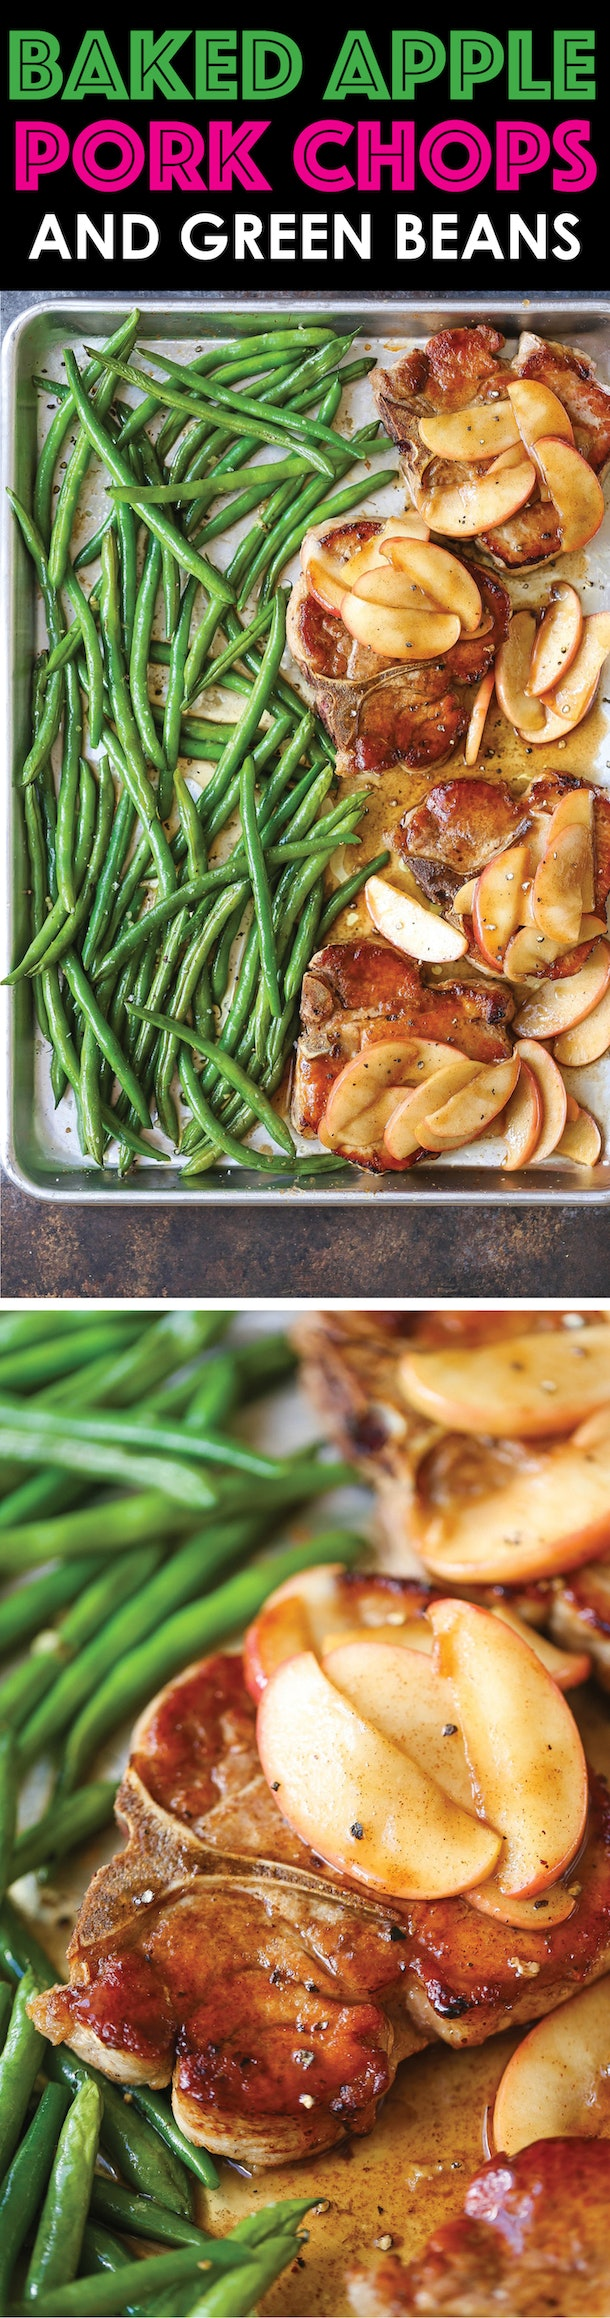 sheet pan recipes with pork, Baked Apple Pork Chops And Green Beans